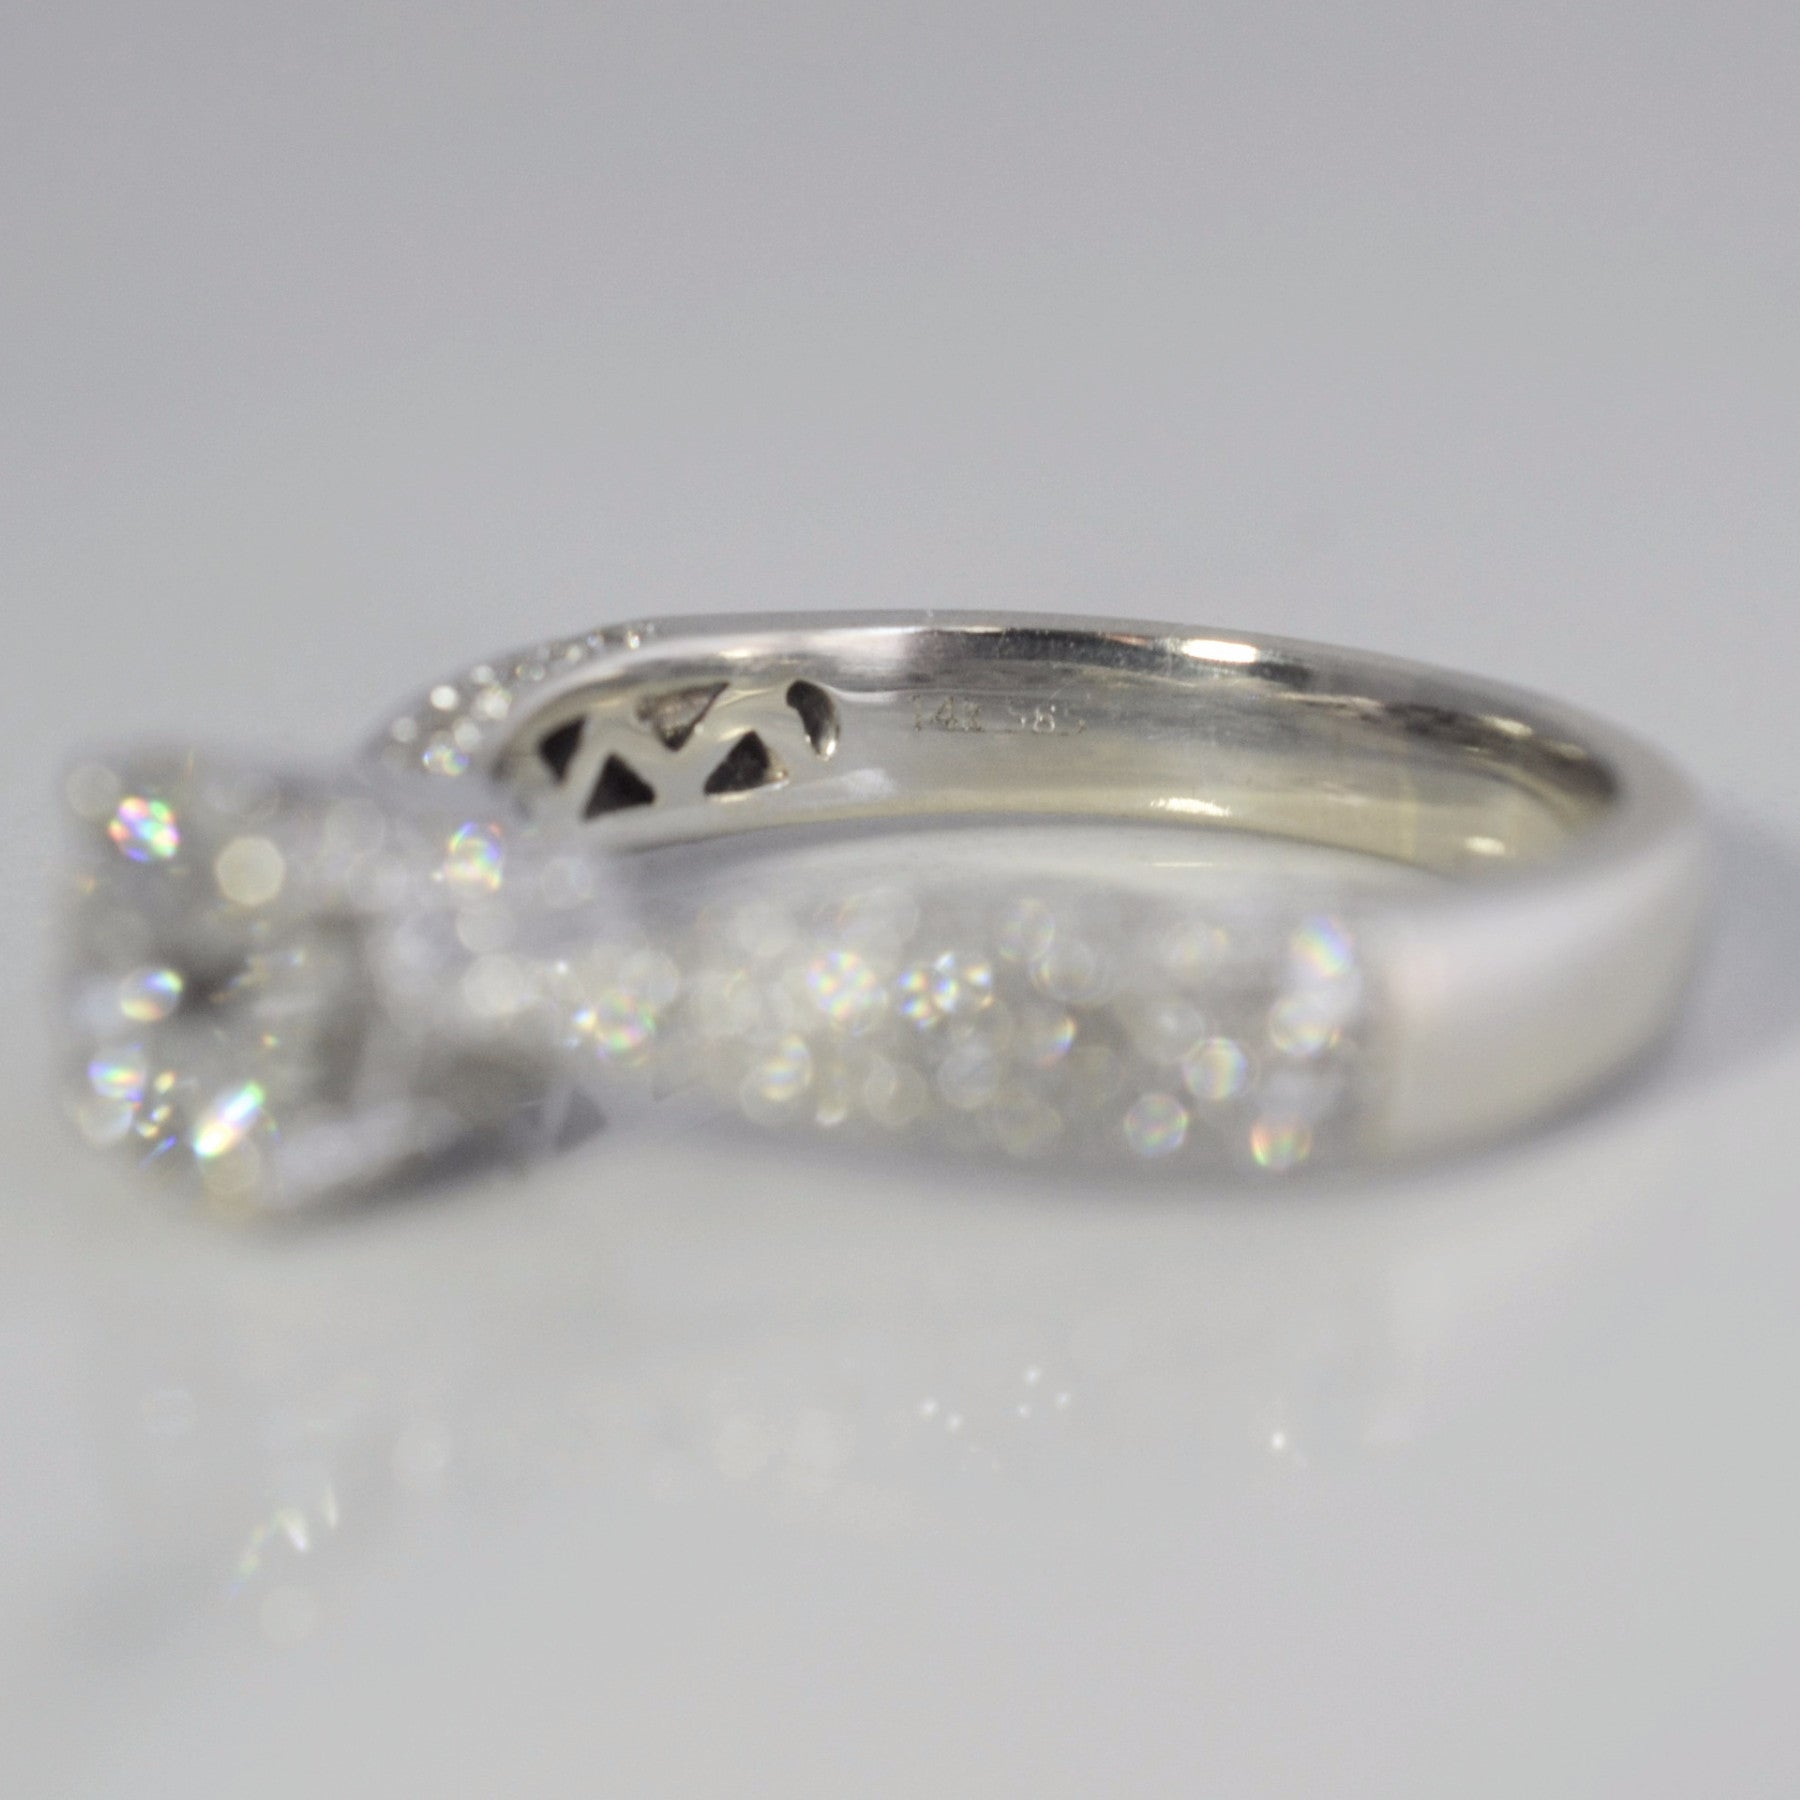 Twisted Pave Engagement Ring | 1.74 ctw, SZ 7.75 |